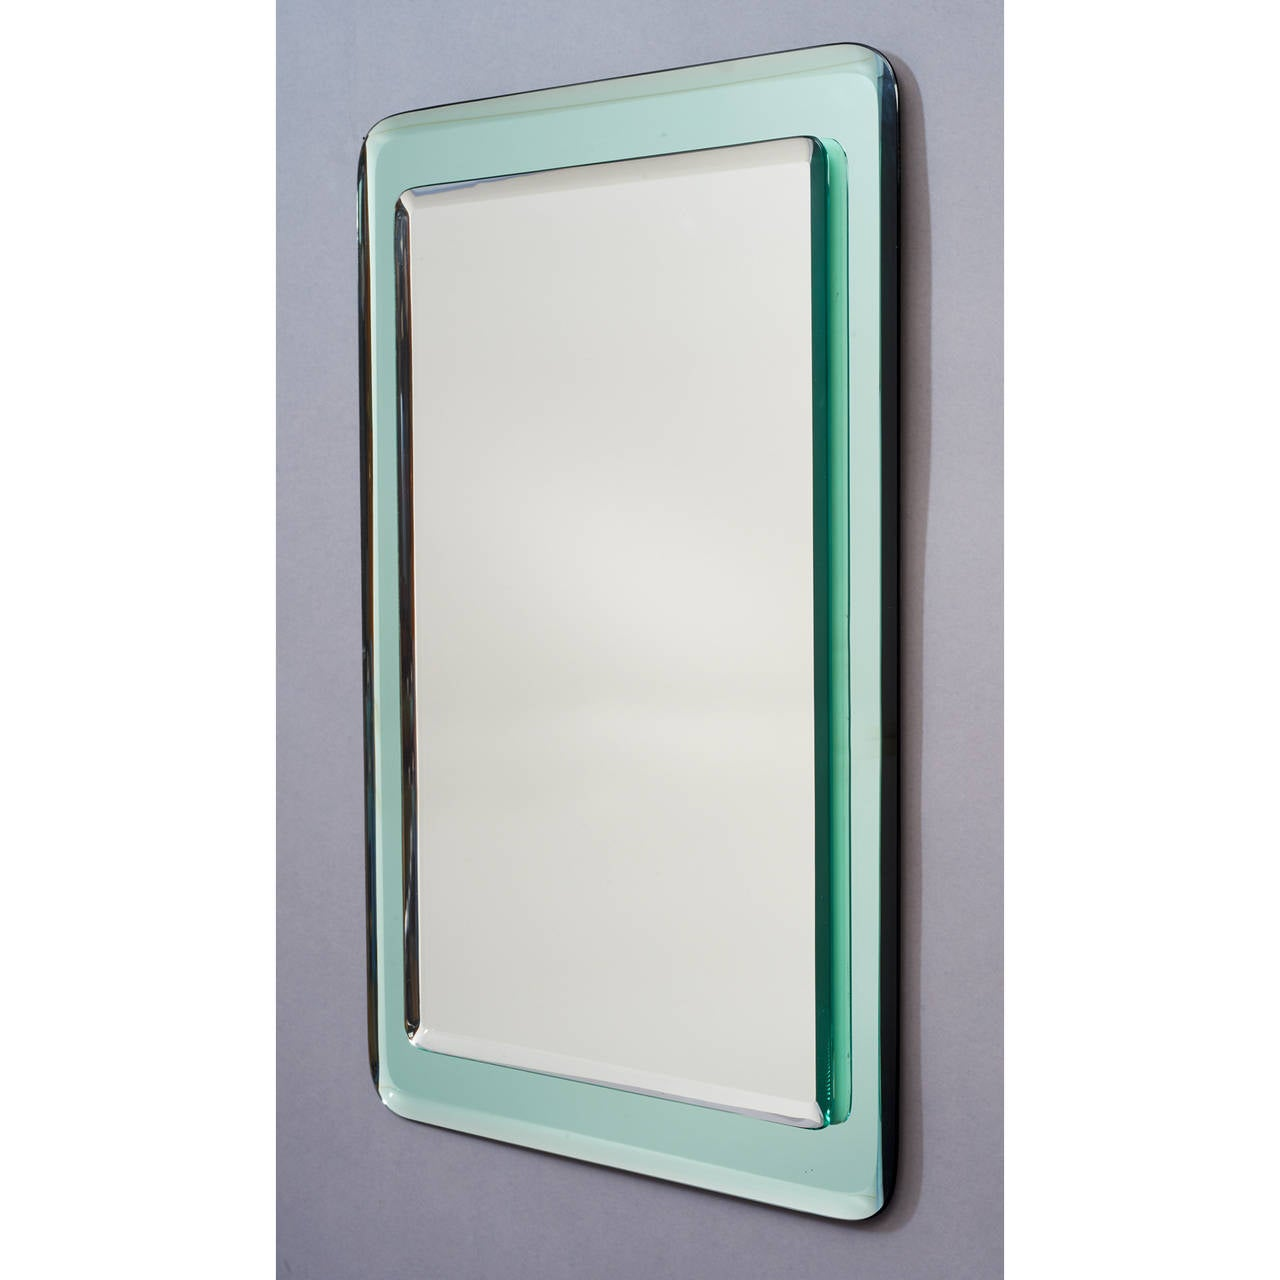 Italy, 1970s. Elegant pair of reverse beveled mirror mounted on reverse beveled colored vert-de-nil mirrored glass, with rounded corners. Dimensions: 19.5 x 28. Two available, sold and priced individually